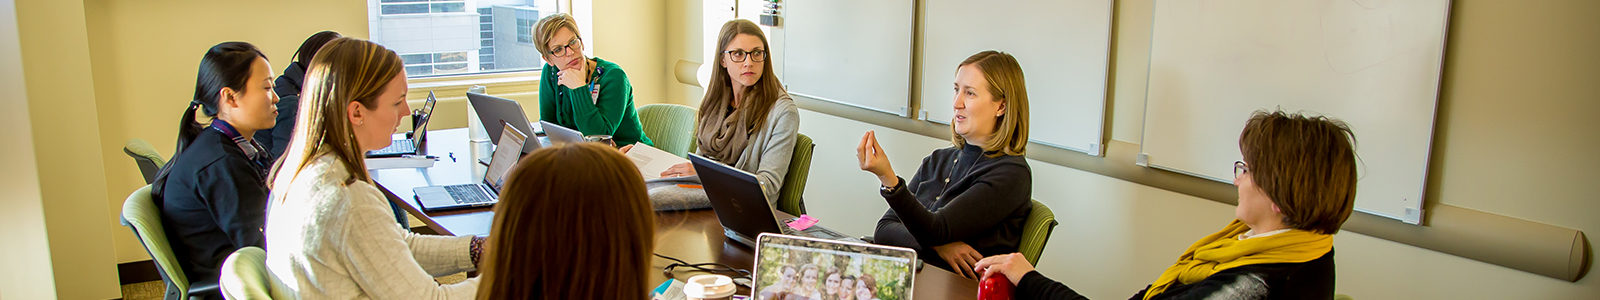 Prof. Linsey Steege and Prof. Barbara King lead a research discussion with PhD students.